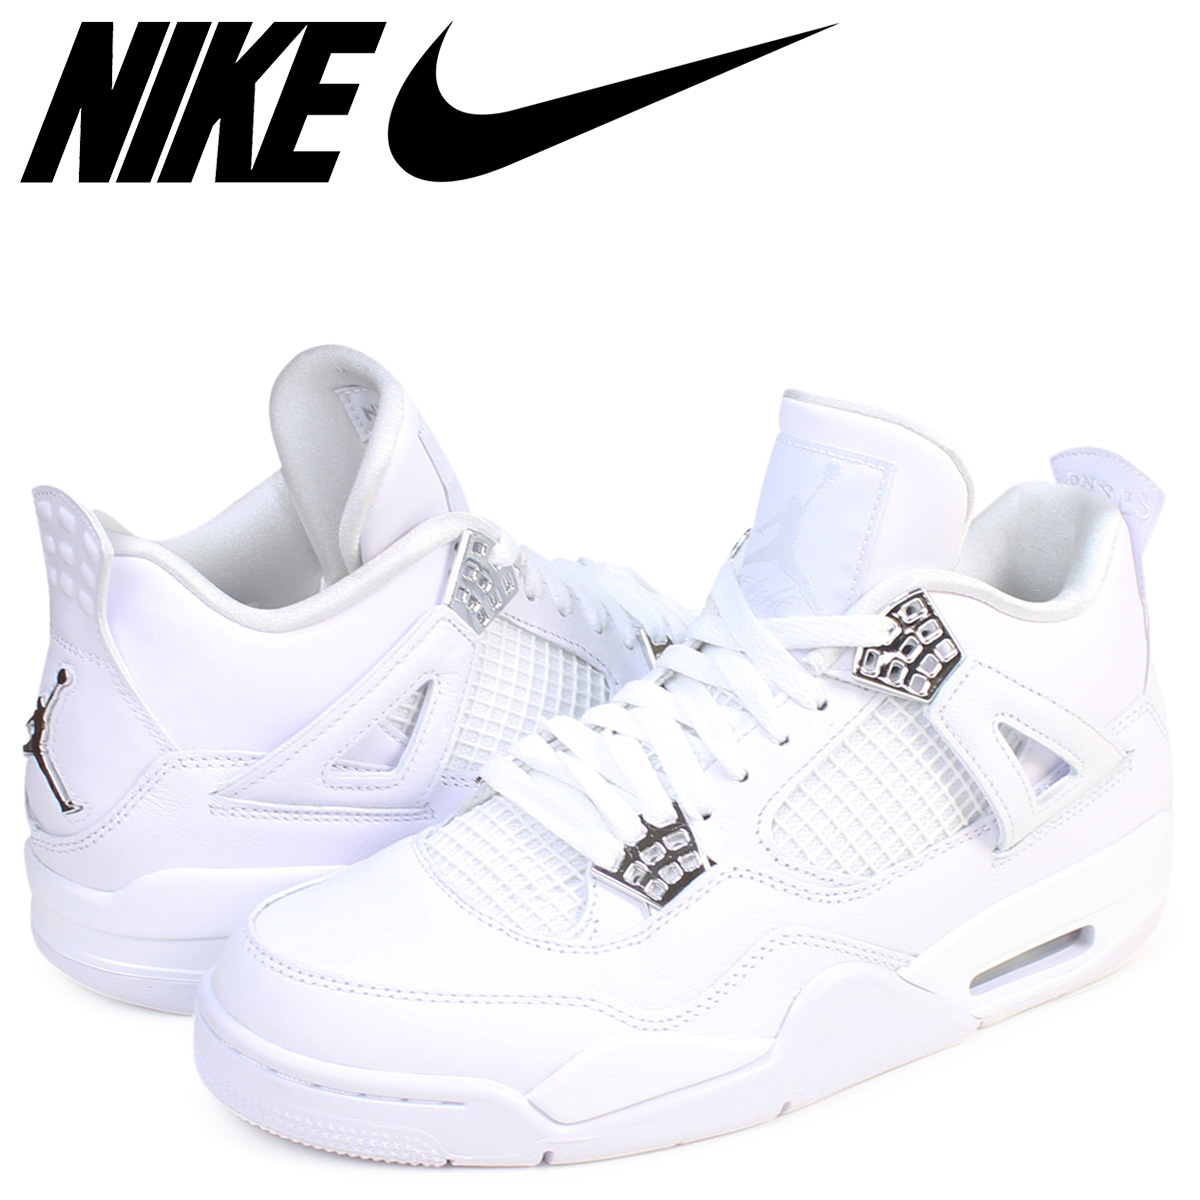 finest selection 0e306 0c315 NIKE AIR JORDAN 4 RETRO PURE MONEY Nike Air Jordan 4 nostalgic sneakers men  308,497-100 white